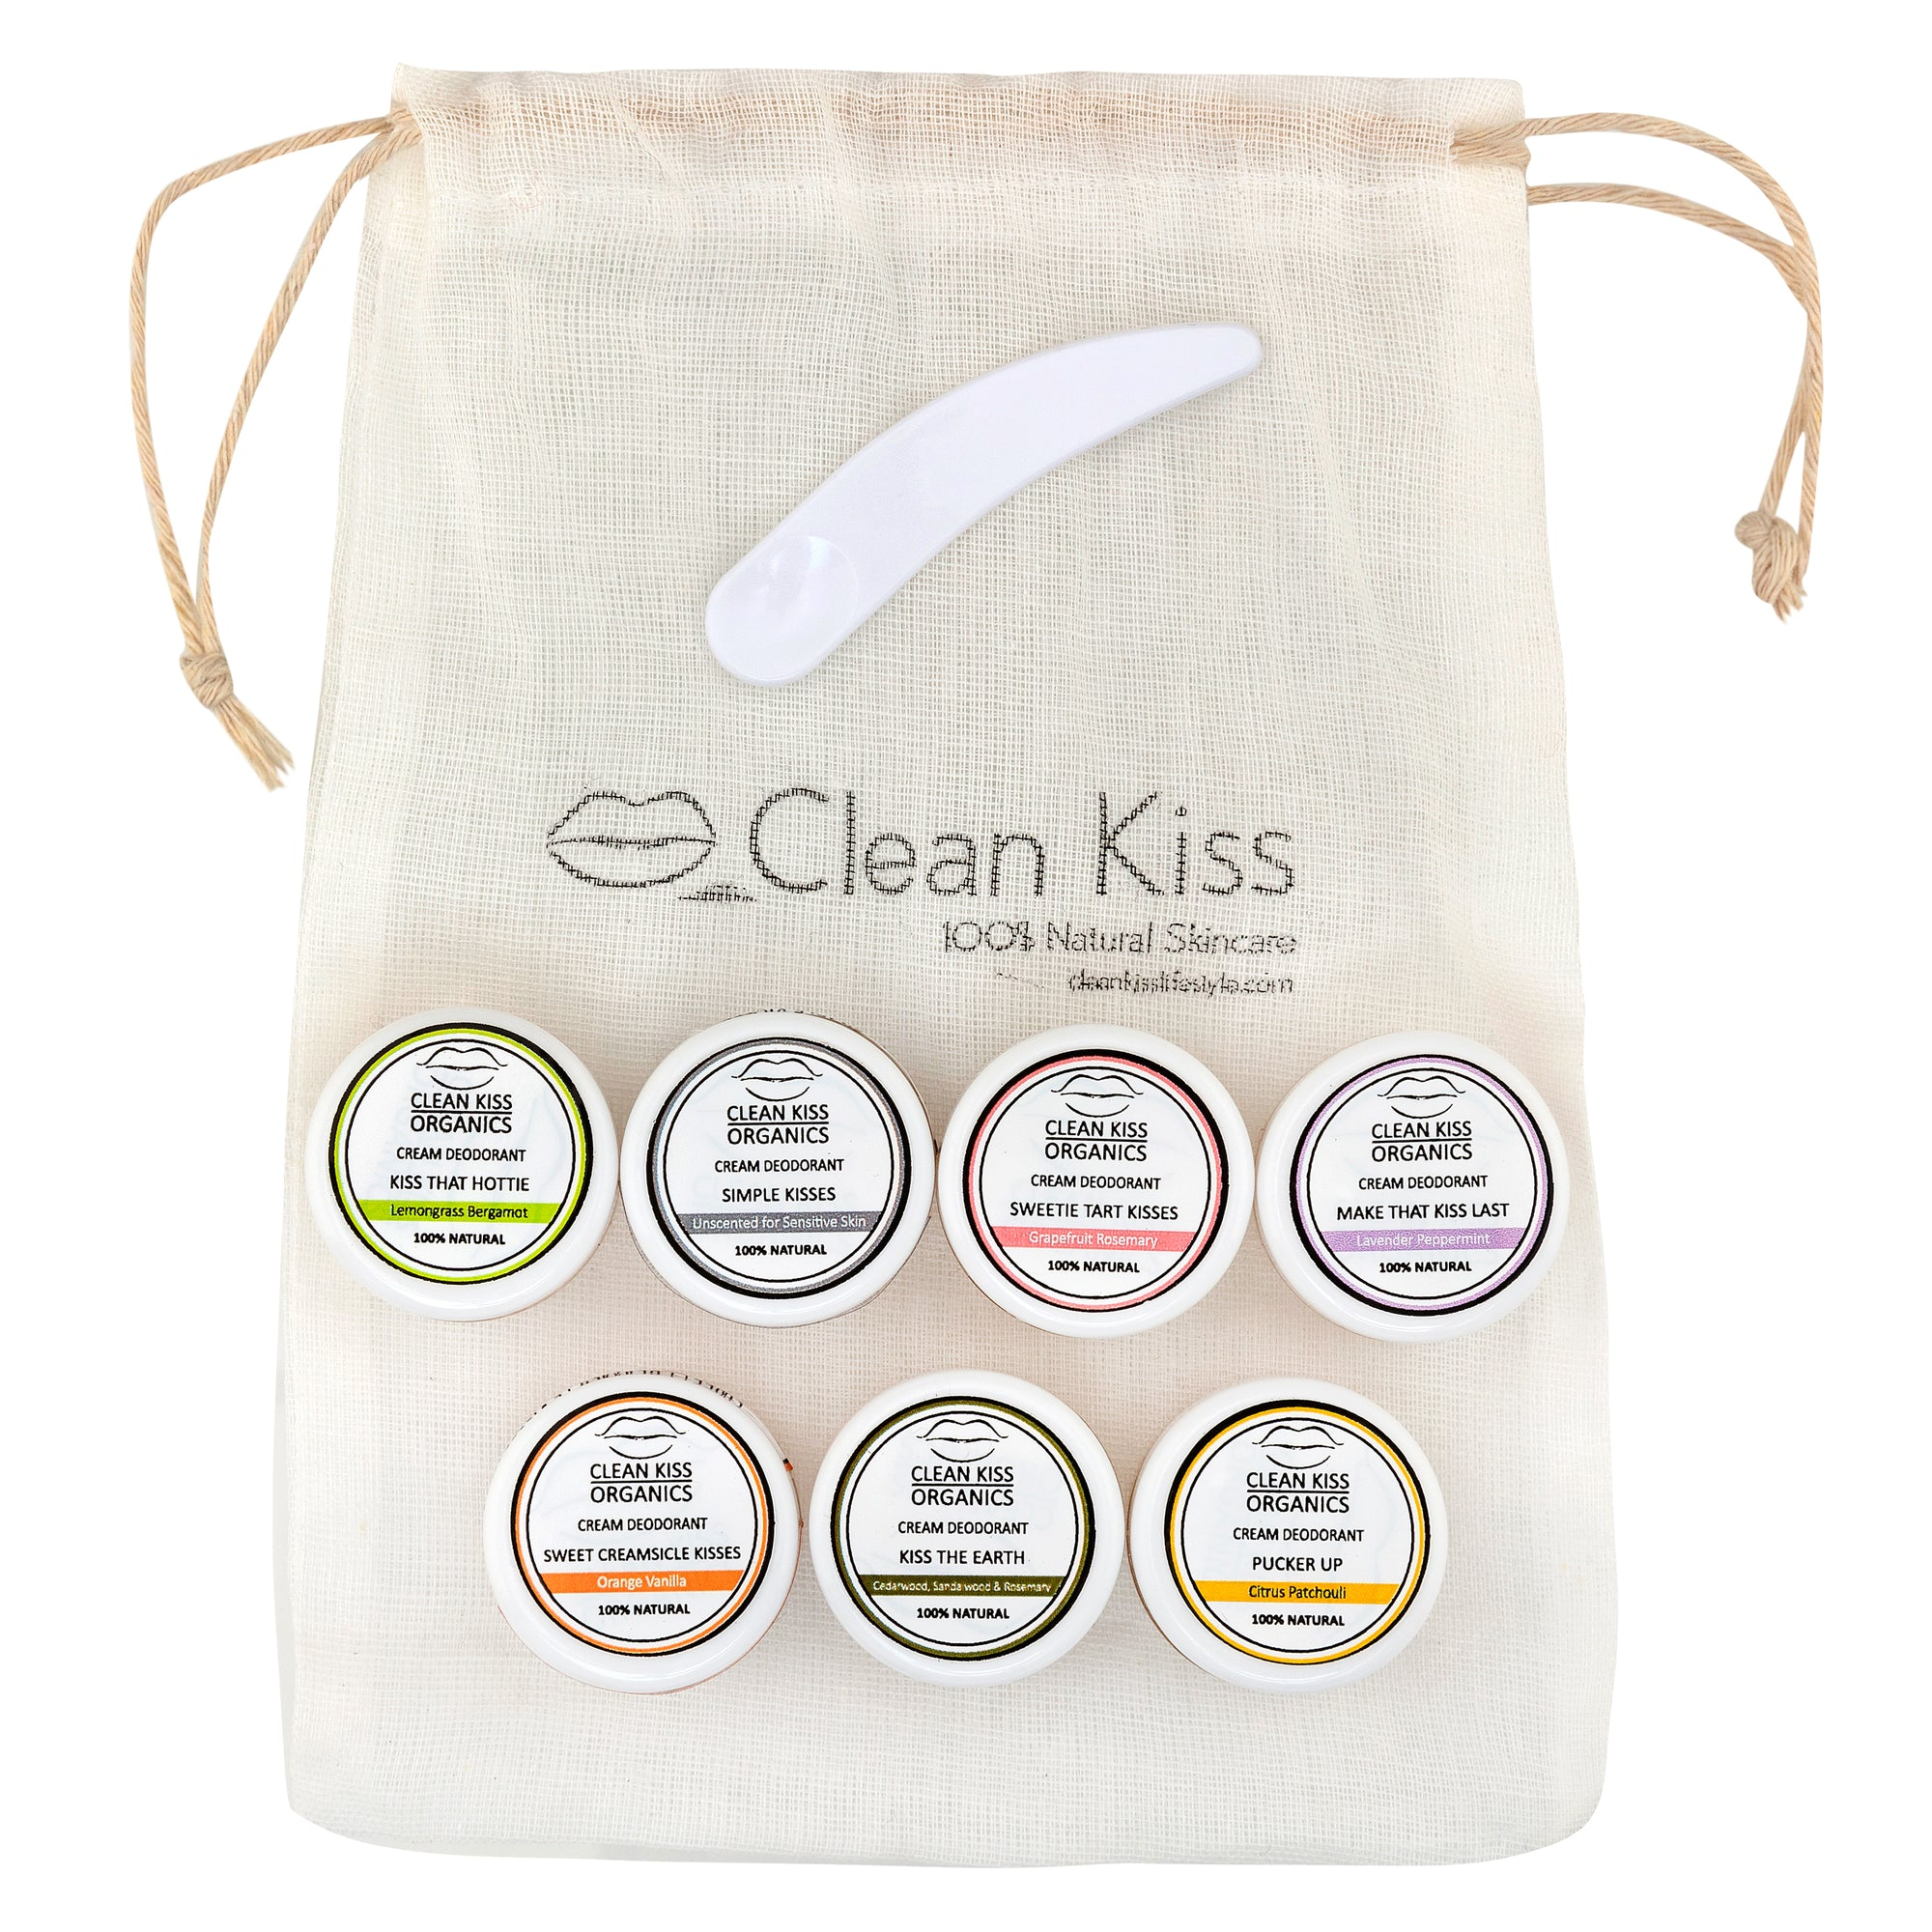 Clean Kiss natural deodorant 7 piece mini sampler set